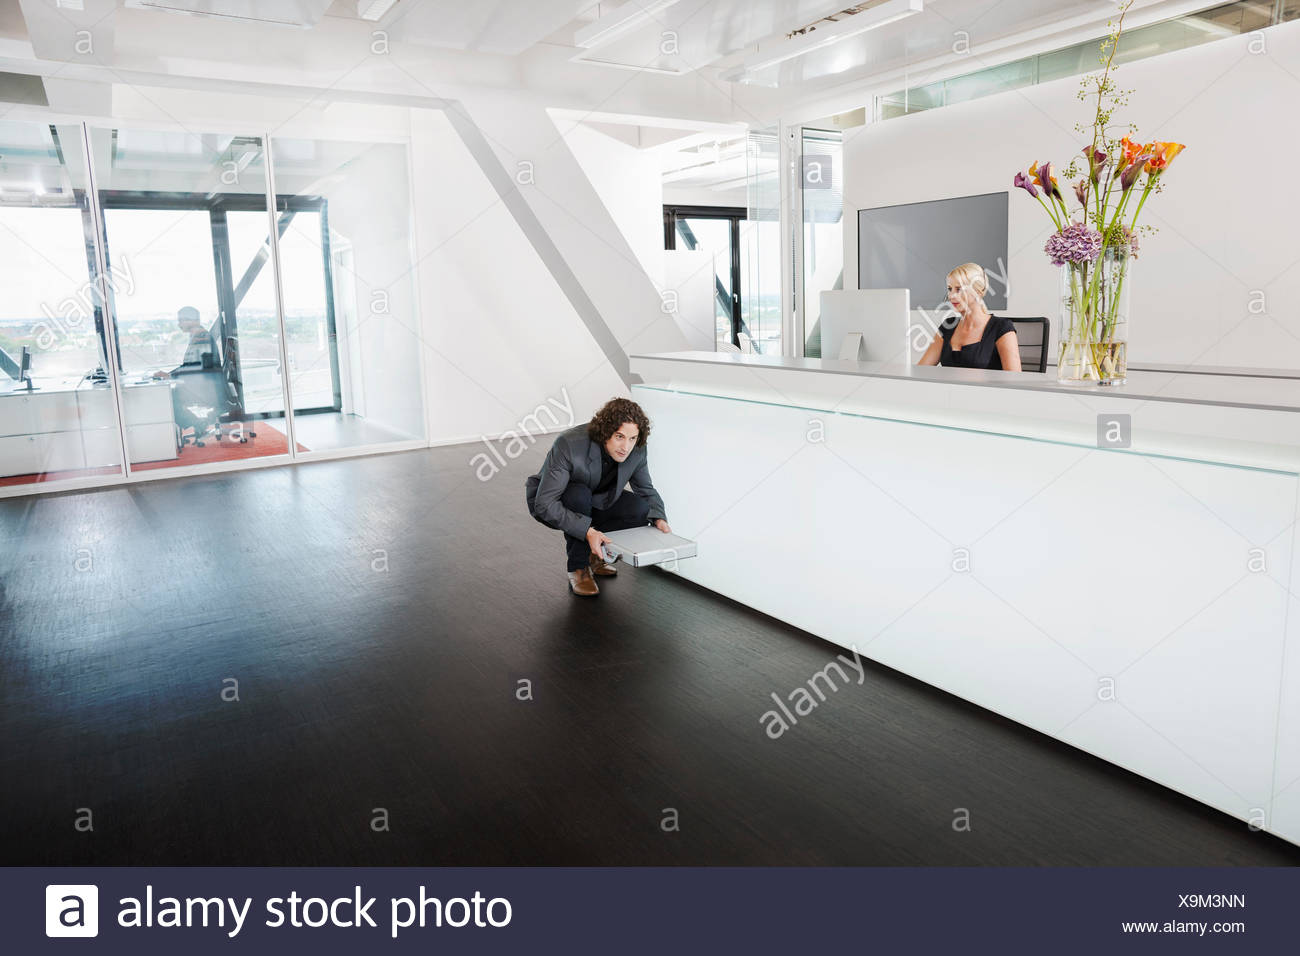 Man crouching in front of reception desk with briefcase - Stock Image